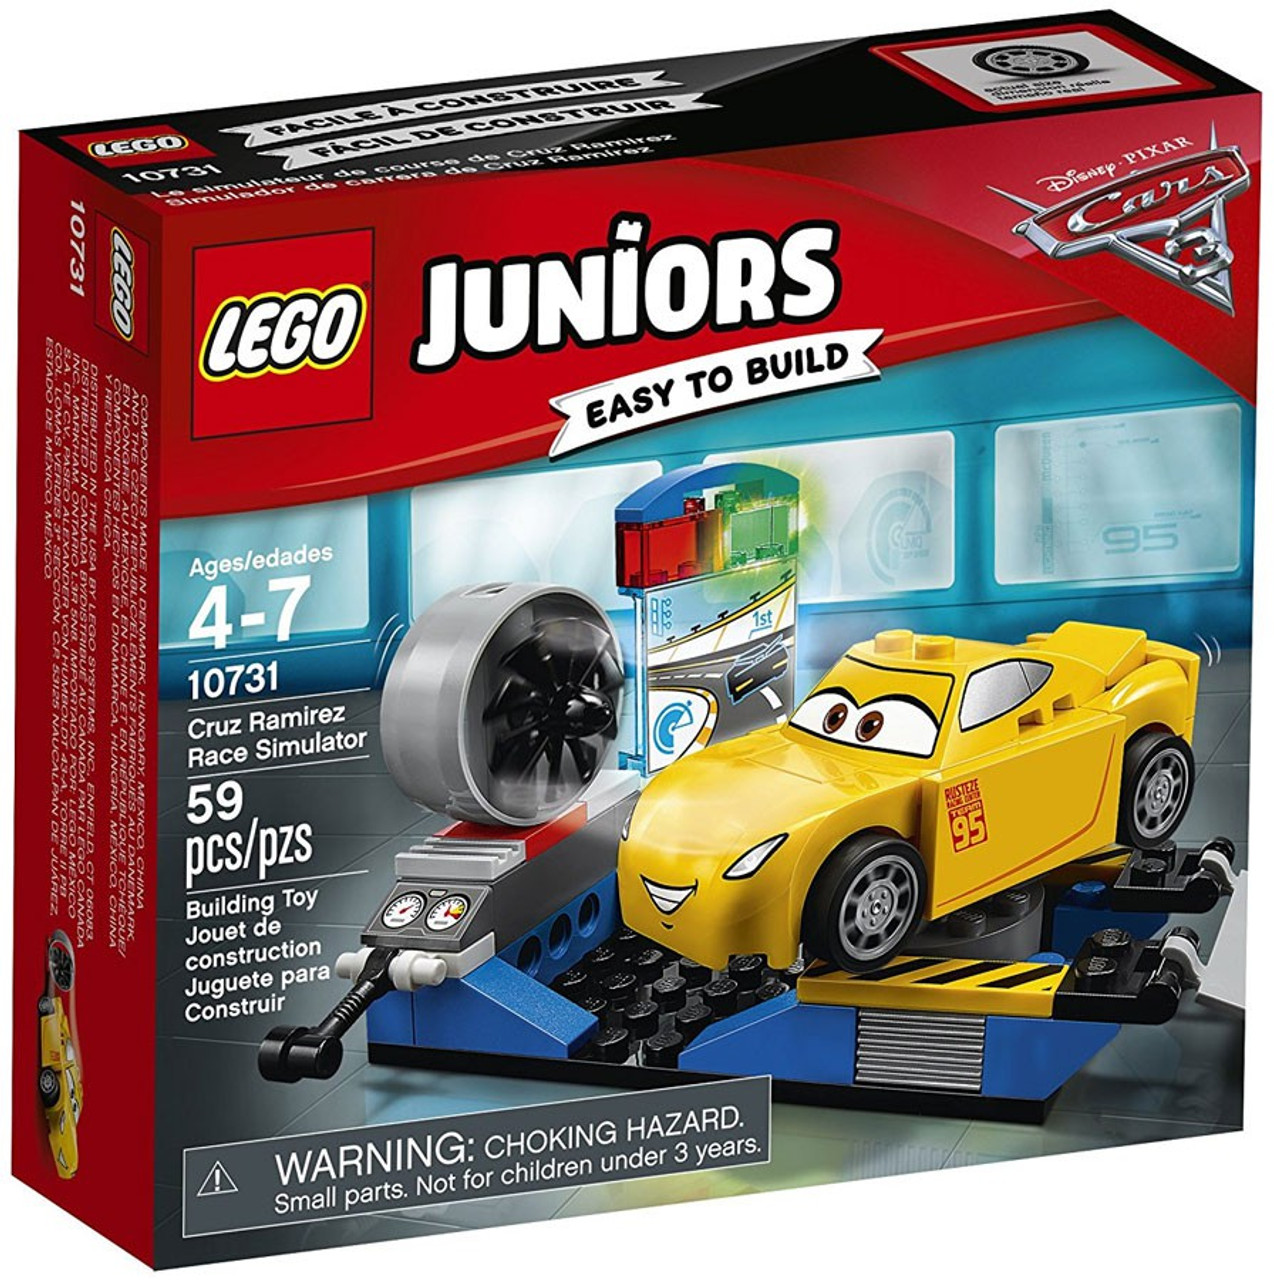 Cars 3 Jackson Storm Jouet Lego Disney Pixar Cars Cars 3 Juniors Cruz Ramirez Race Simulator Set 10731